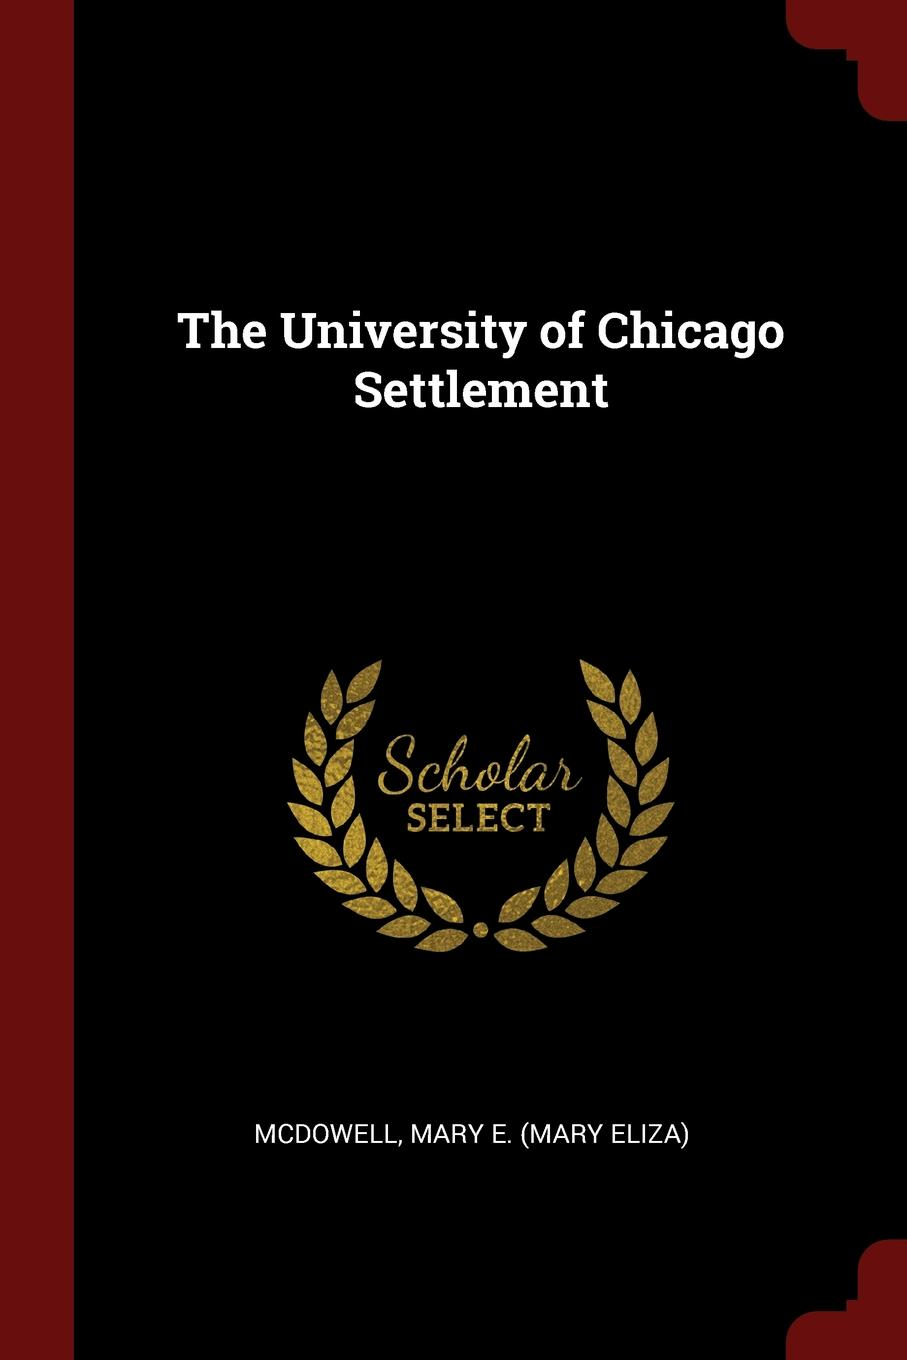 The University of Chicago Settlement